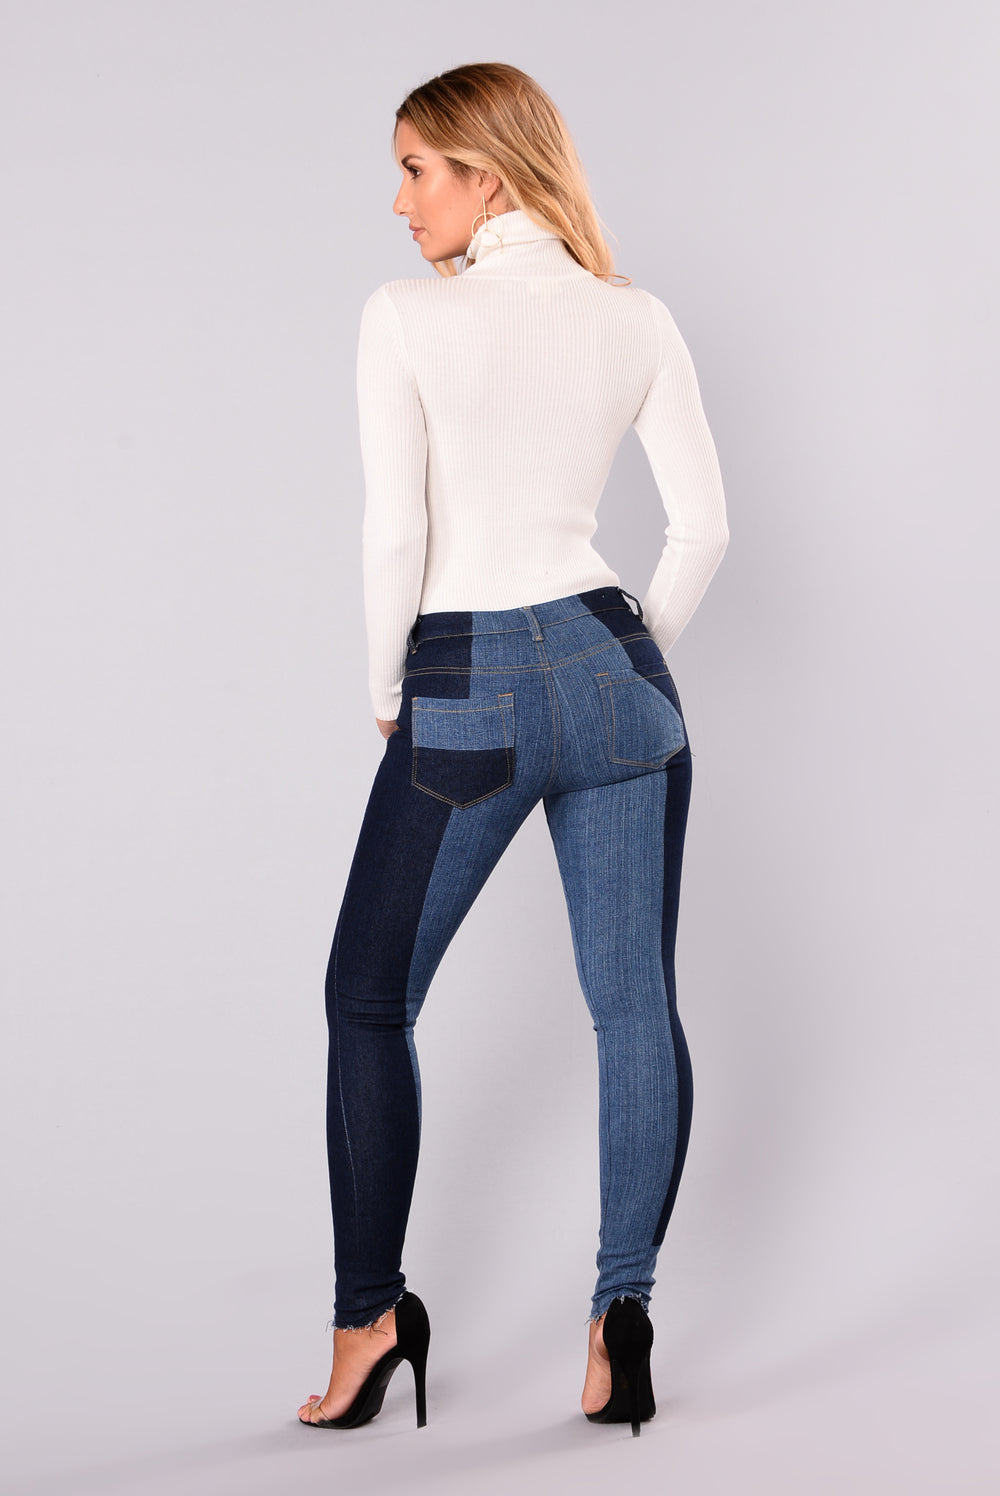 Made Ya Look Skinny Jeans - Medium Denim